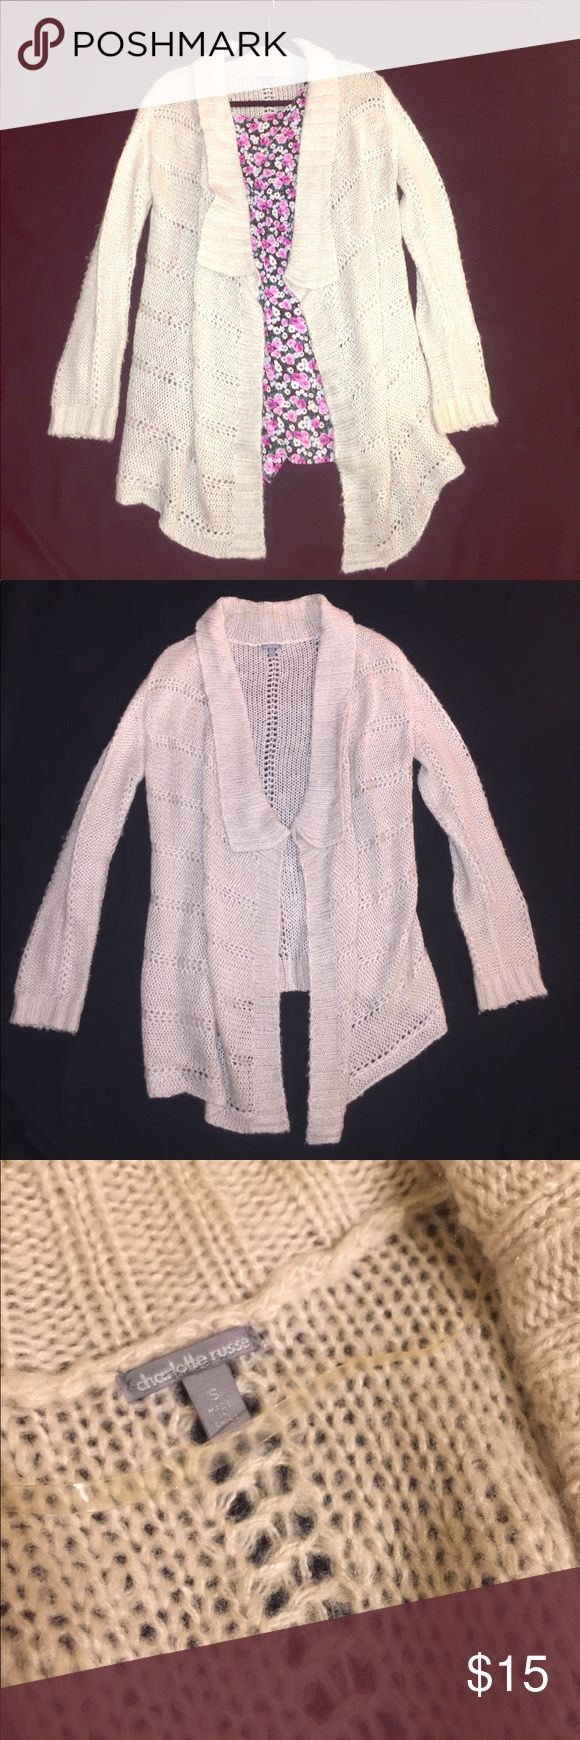 Charlotte Russe cream cardigan Charlotte Russe cream cardigan! Worn only a few times. Back falls to just below the butt, and front falls to about mid-thigh. Sleeves are full-length. Charlotte Russe Sweaters Cardigans